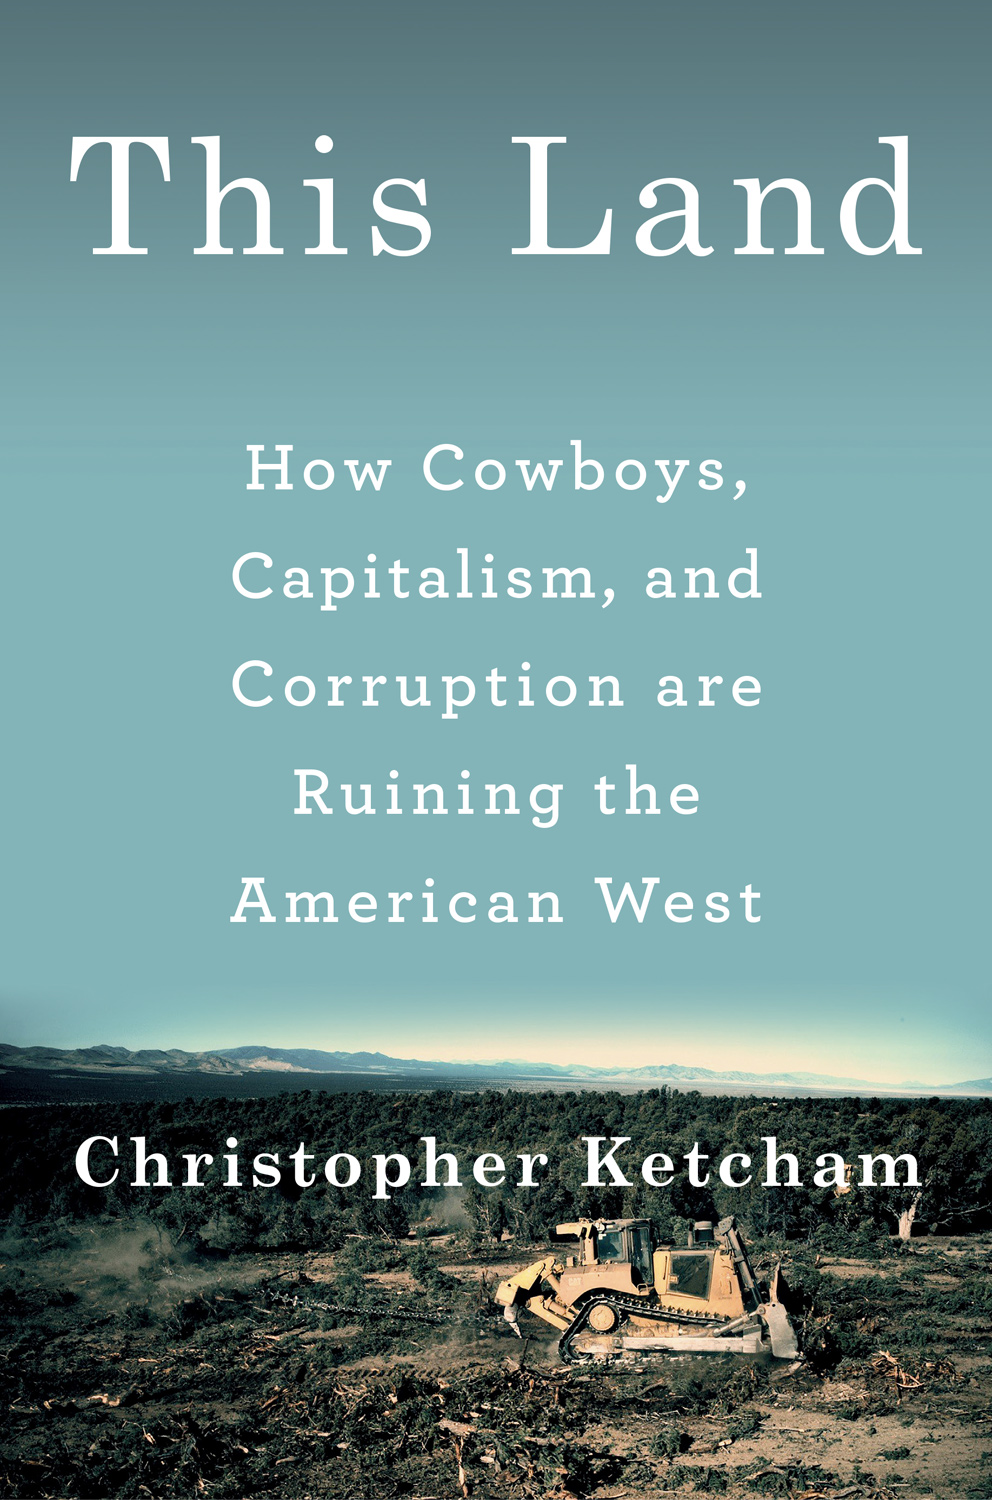 This Land, How Cowboys, Capitalism and Corruption are Ruining the American West by Christopher Ketcham